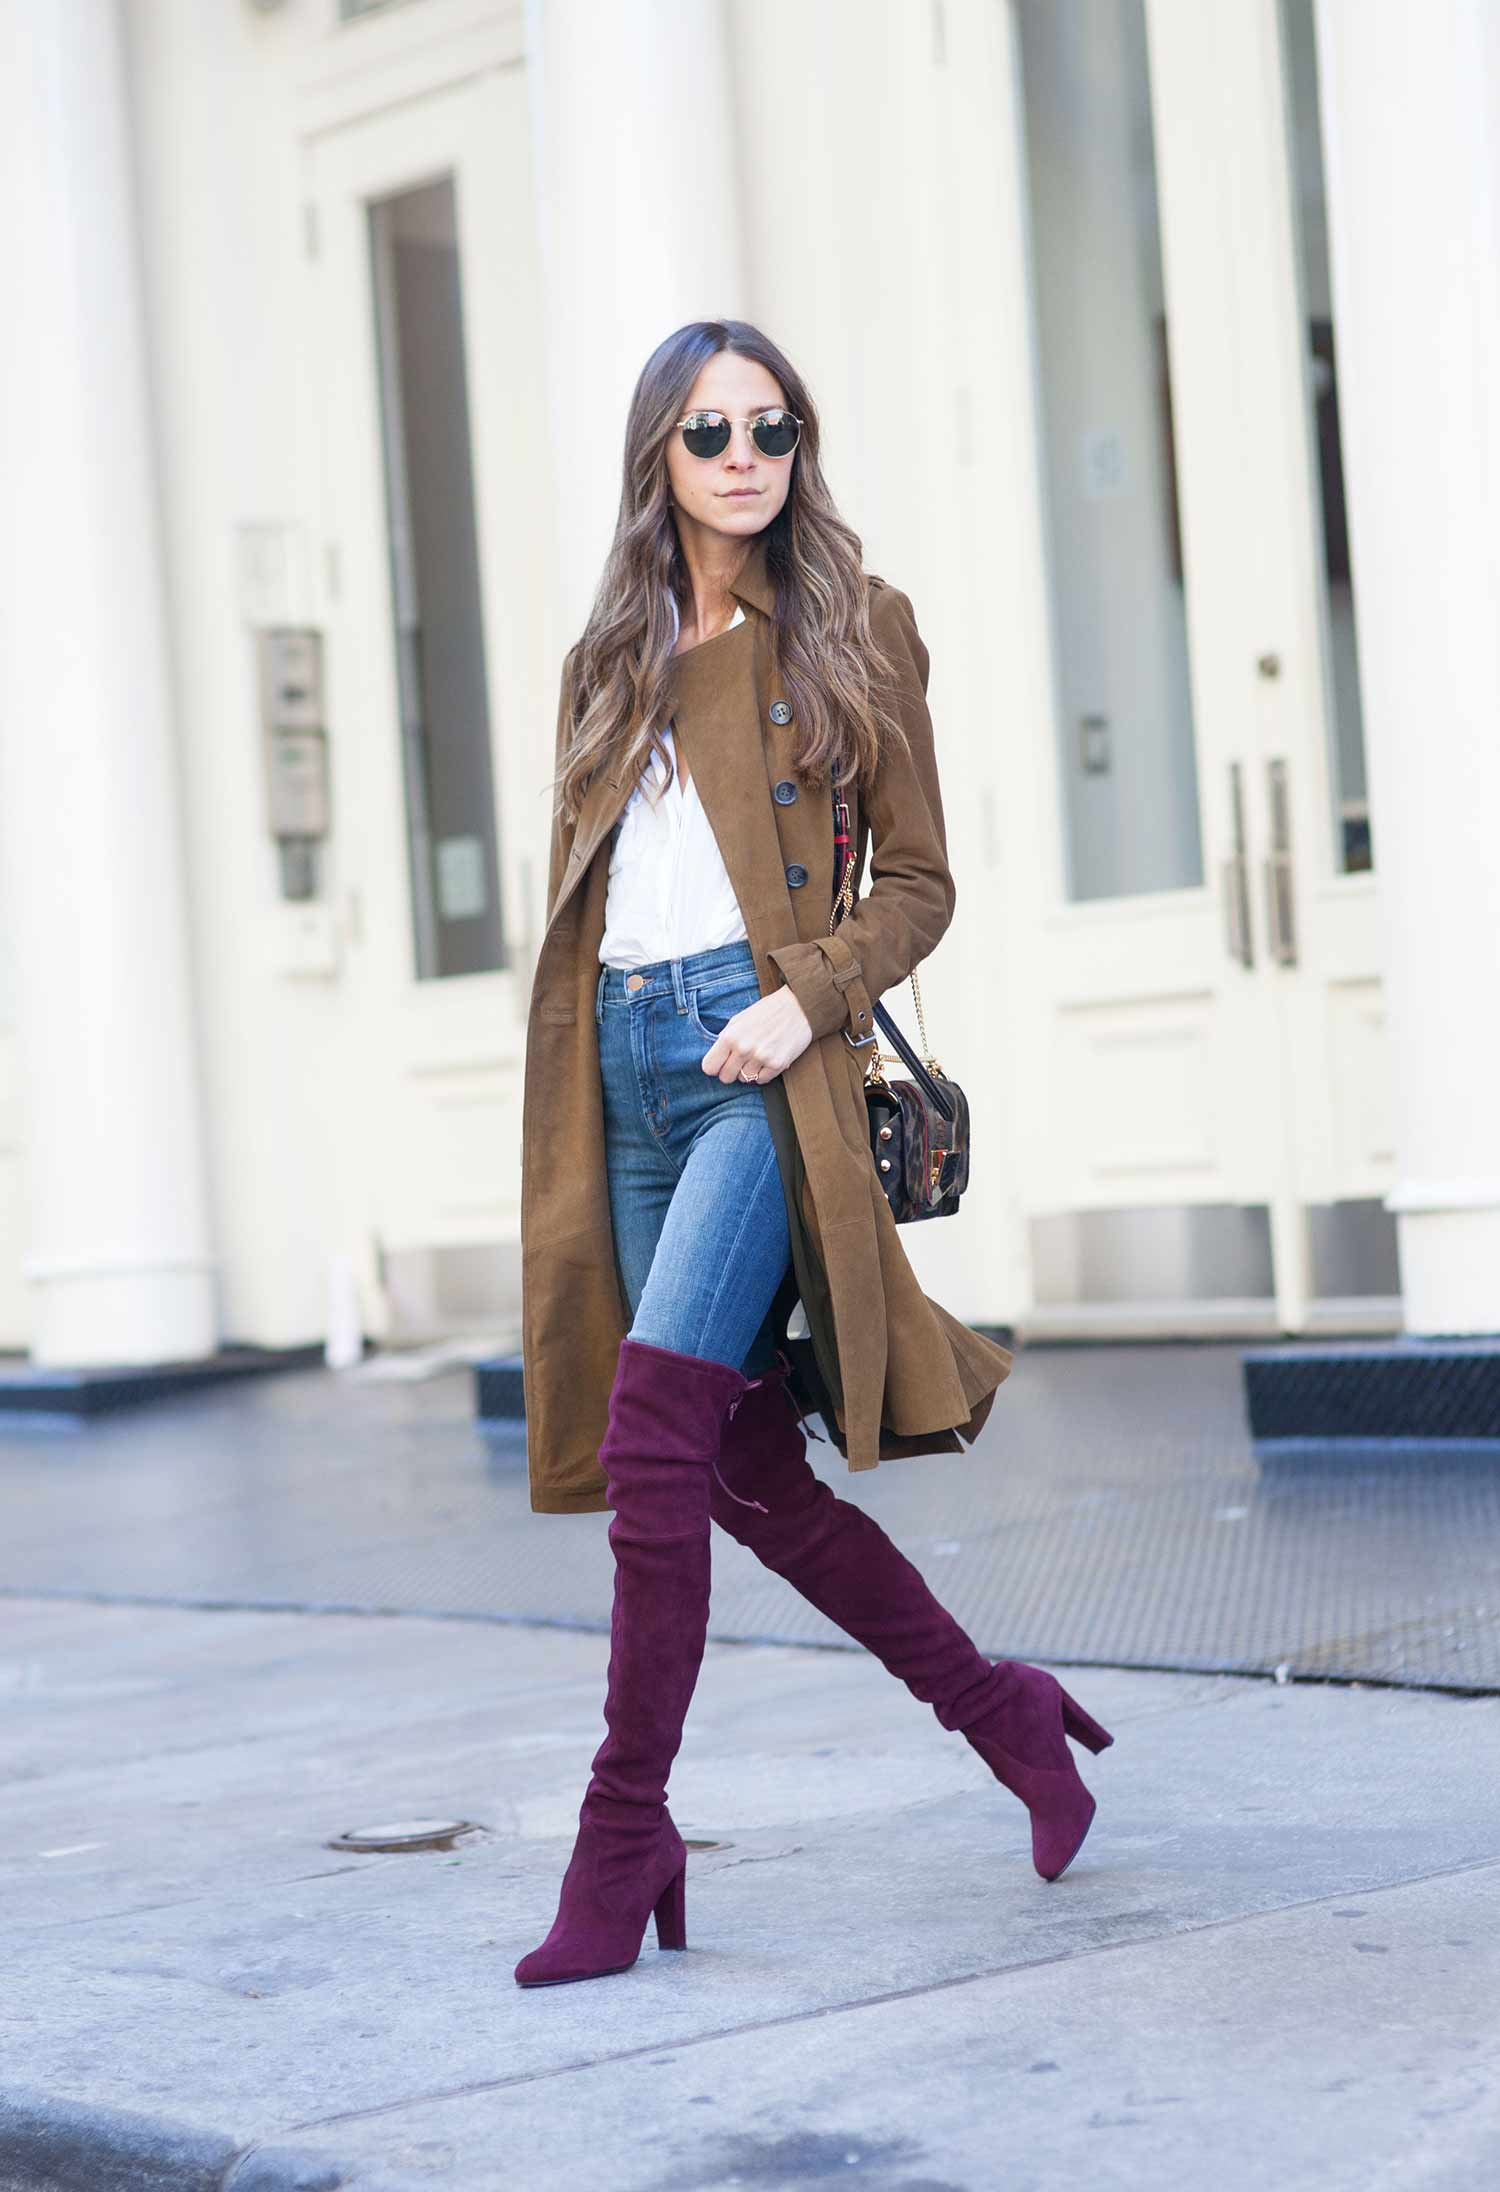 How To Wear Jeans With Tall Boots | The